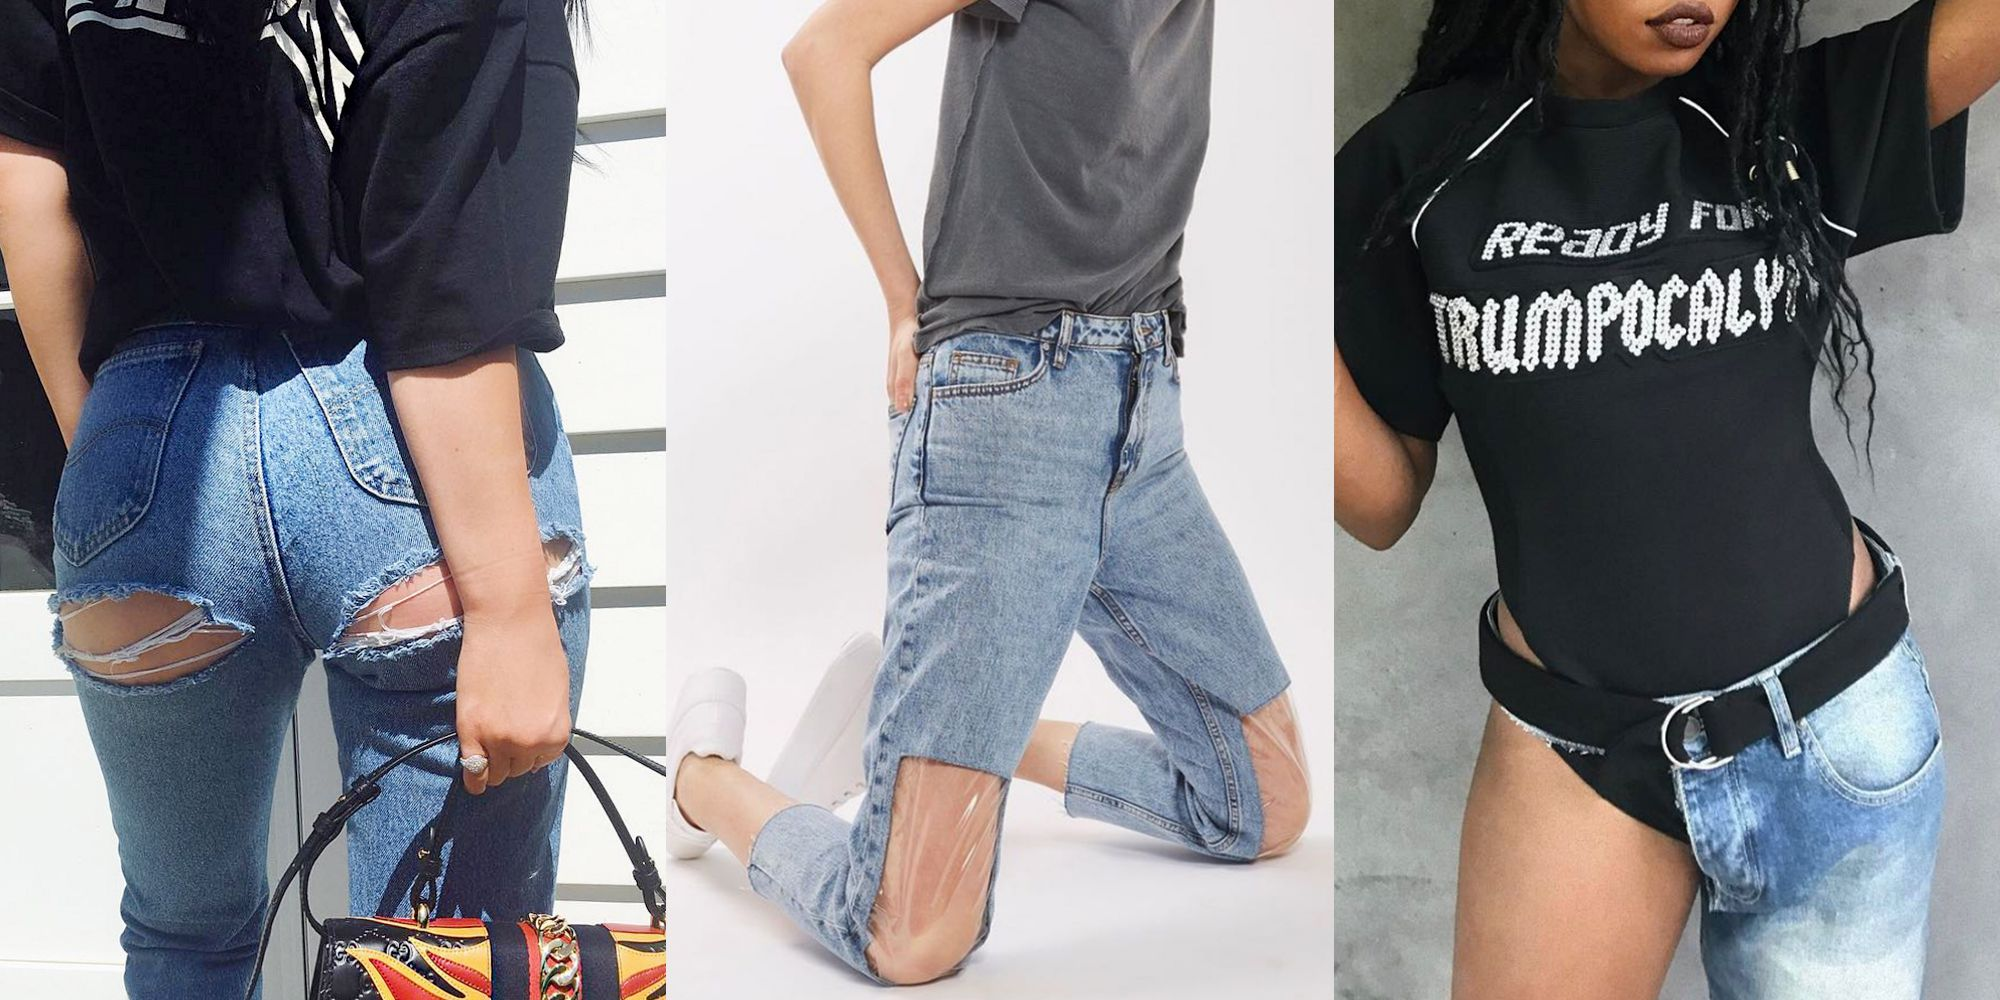 weird style jeans photos